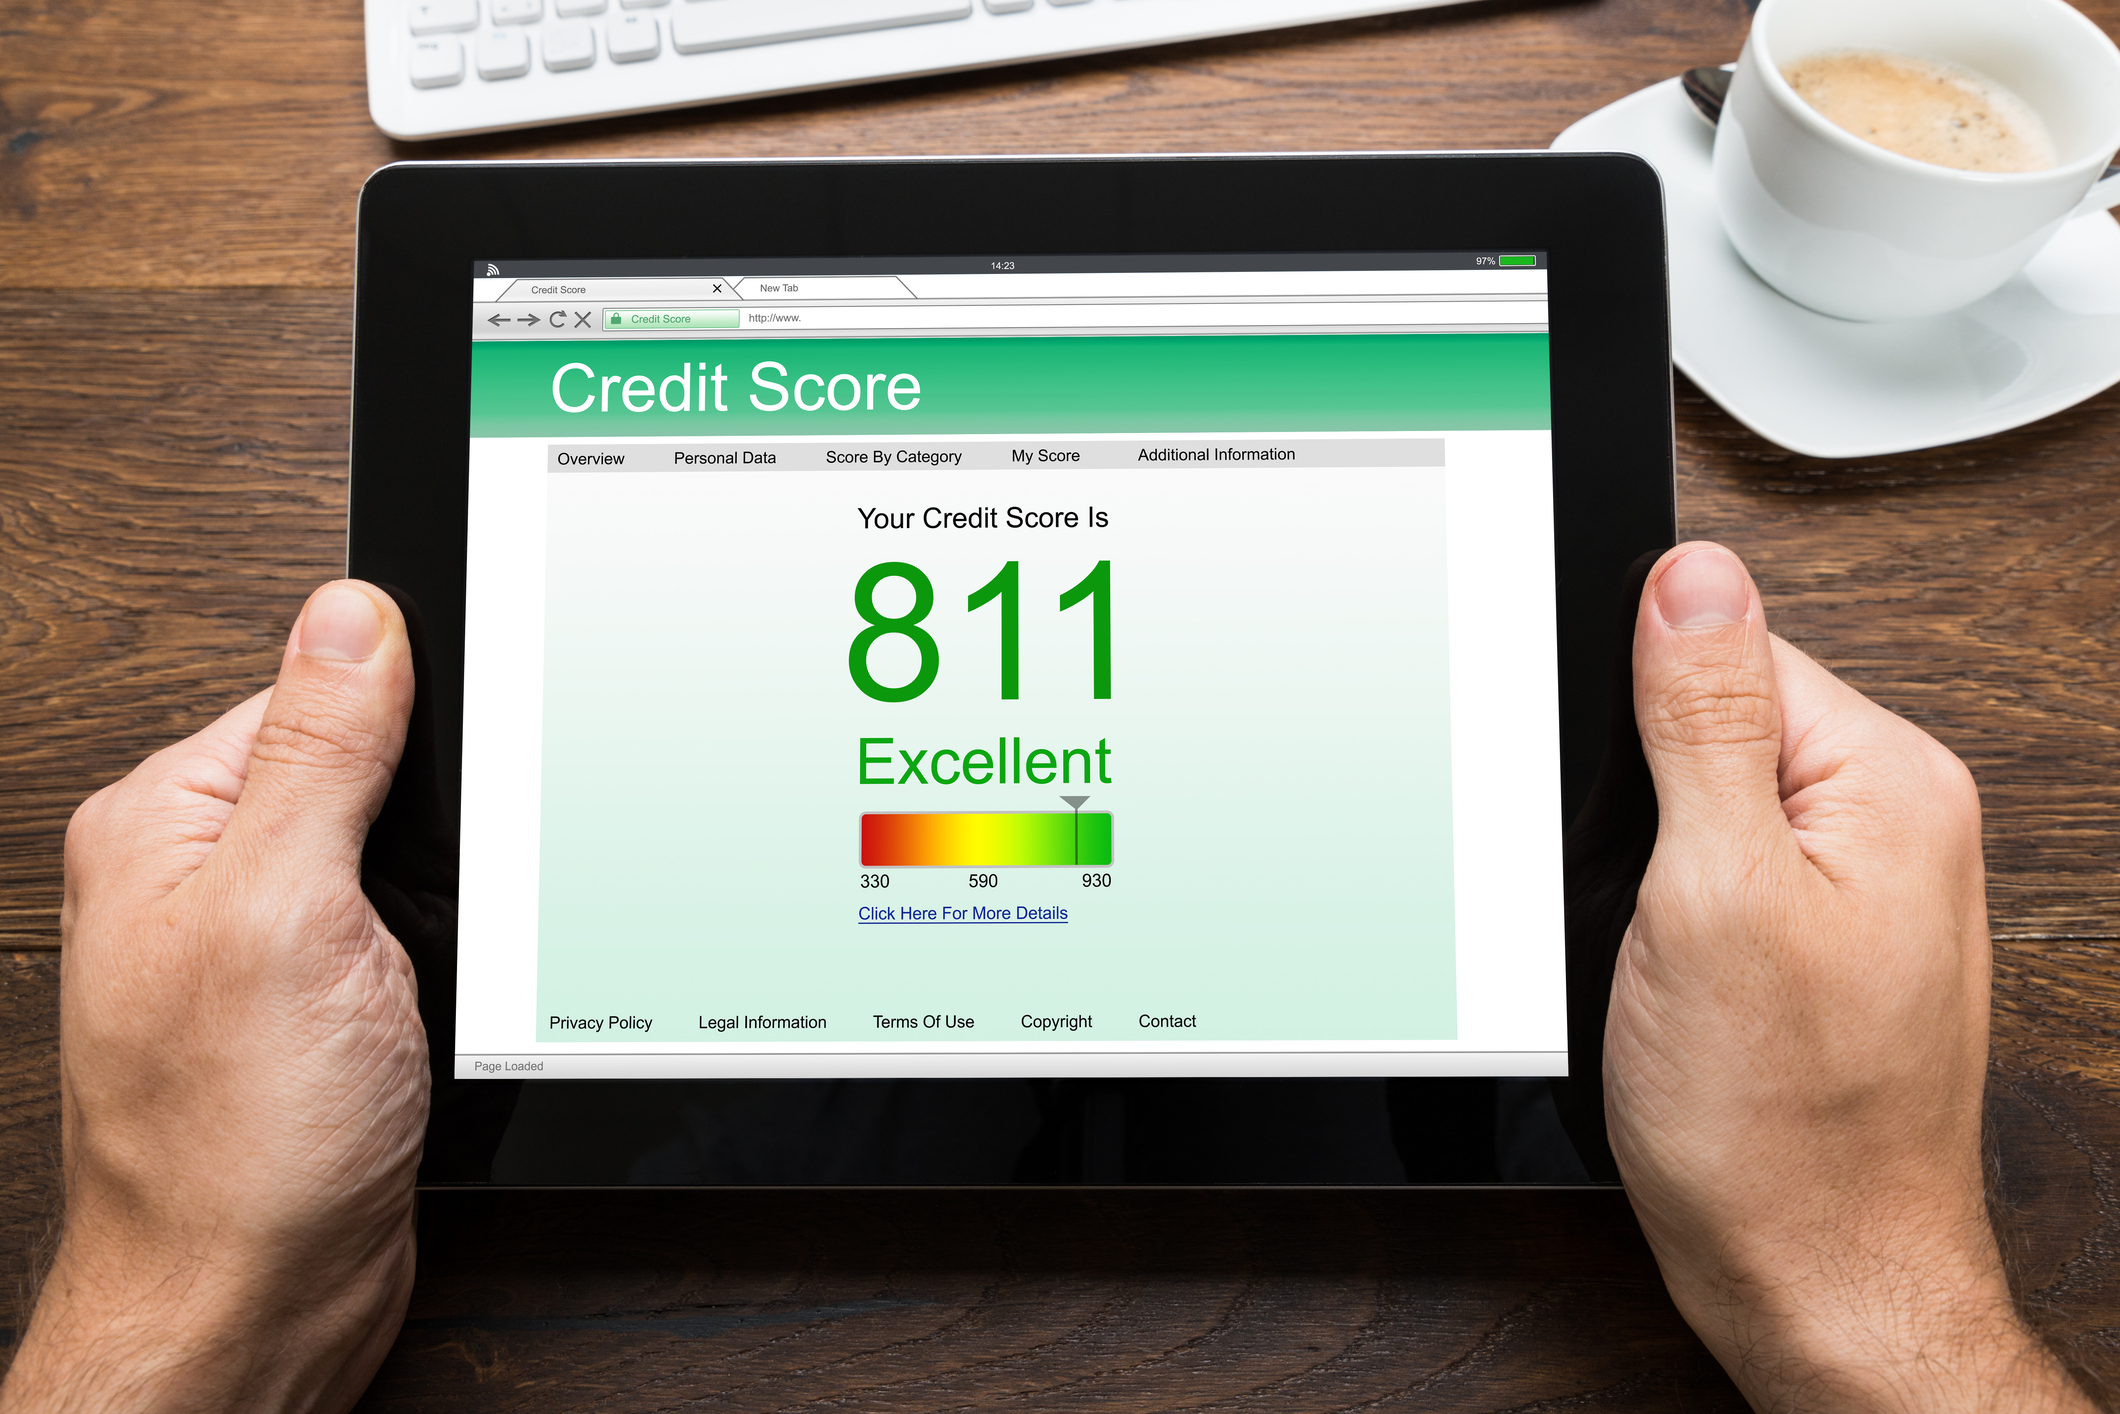 man holding a tablet with a screen that shows a credit score of 811